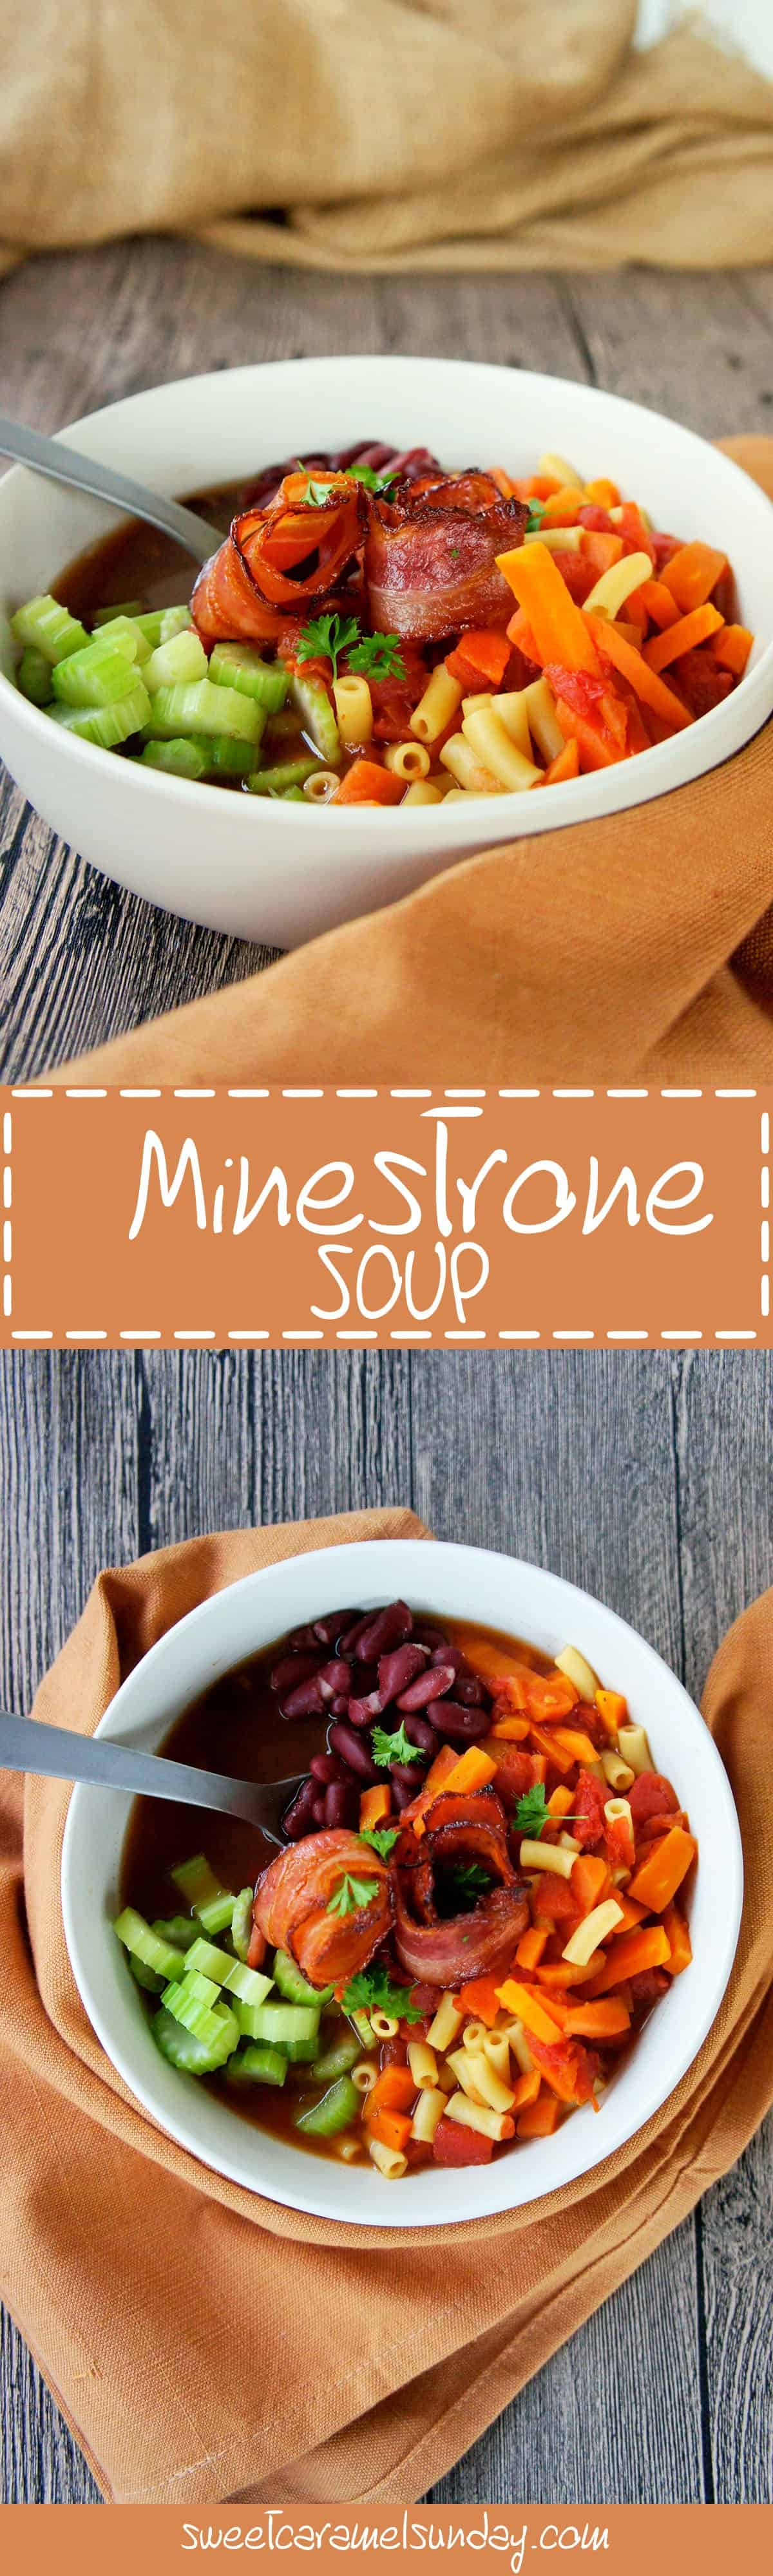 Sweet Caramel Sunday - Minestrone soup pin